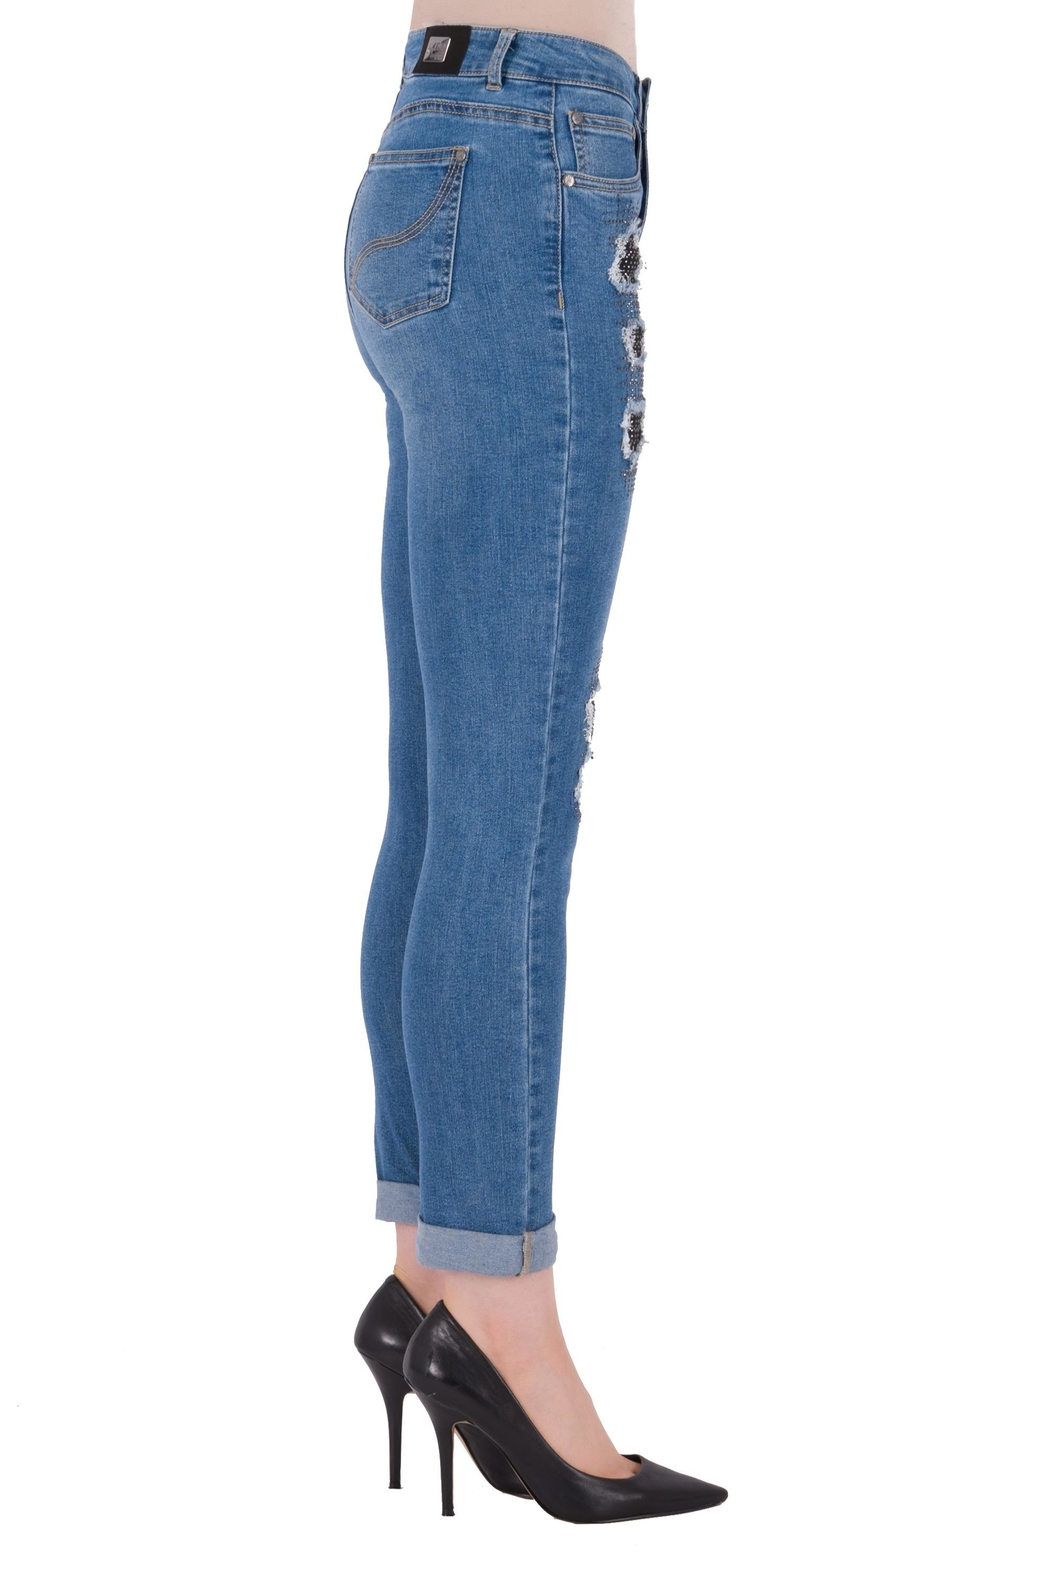 Joseph Ribkoff Rip Accent Jeans - Front Full Image